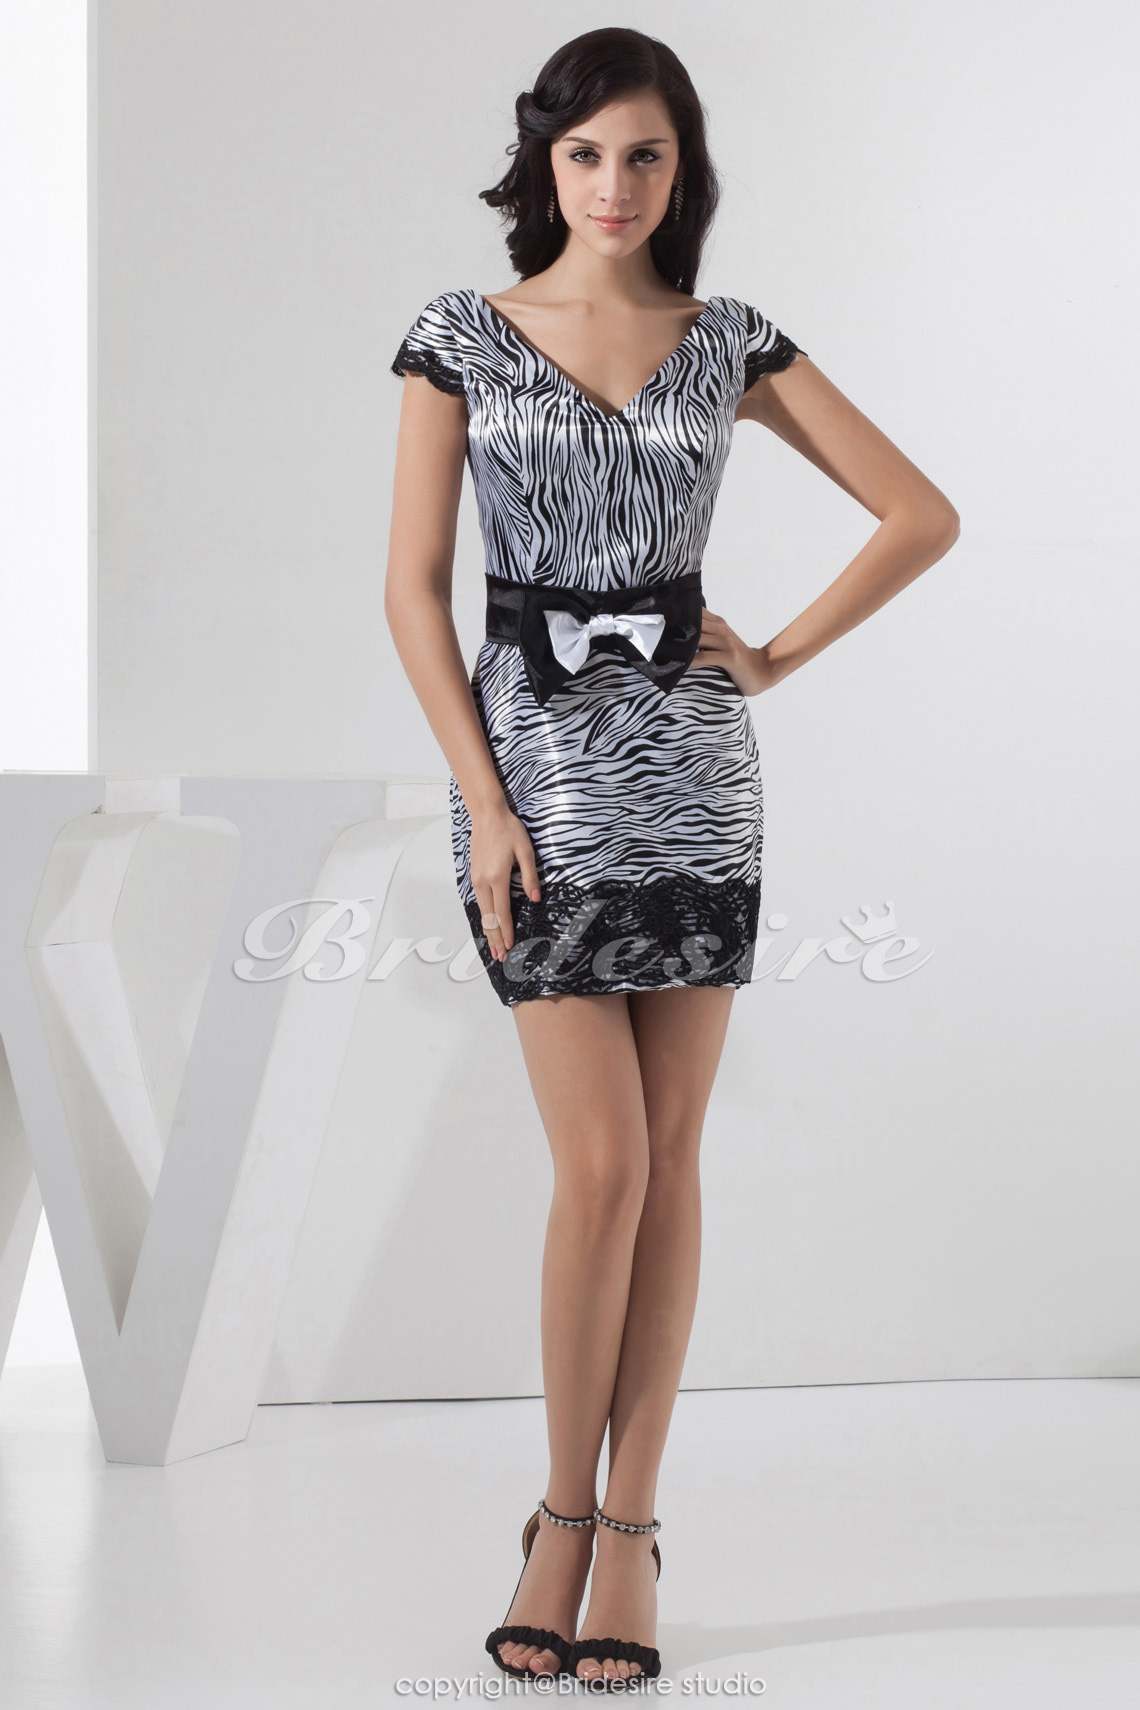 Sheath/Column V-neck Short/Mini Short Sleeve Taffeta Dress